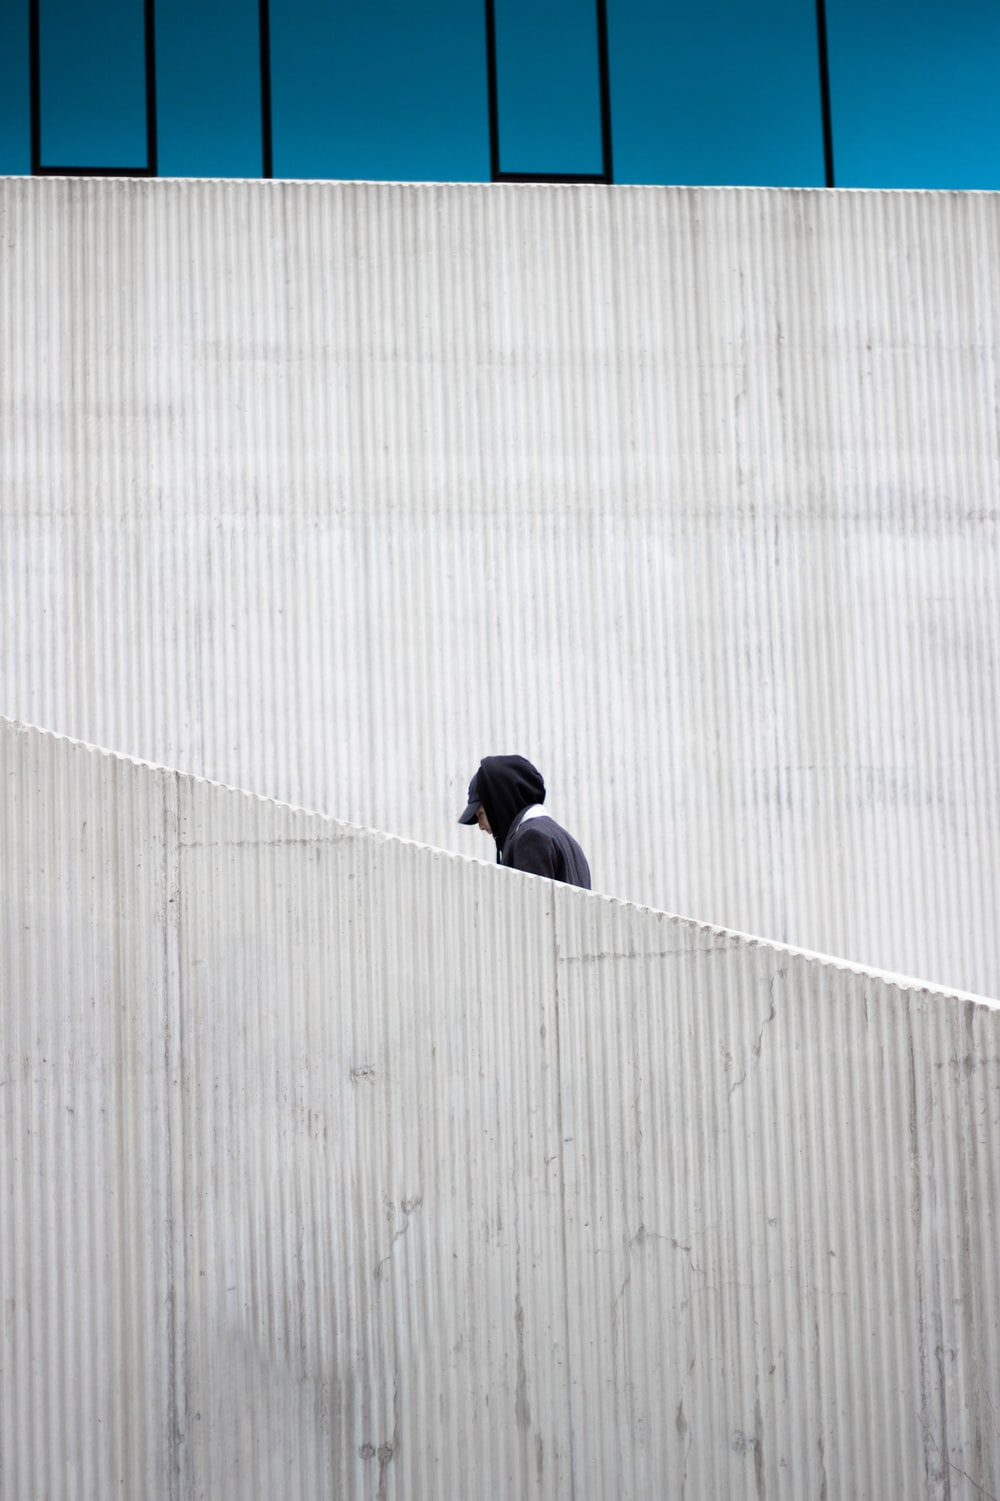 person in black cap and hoodie